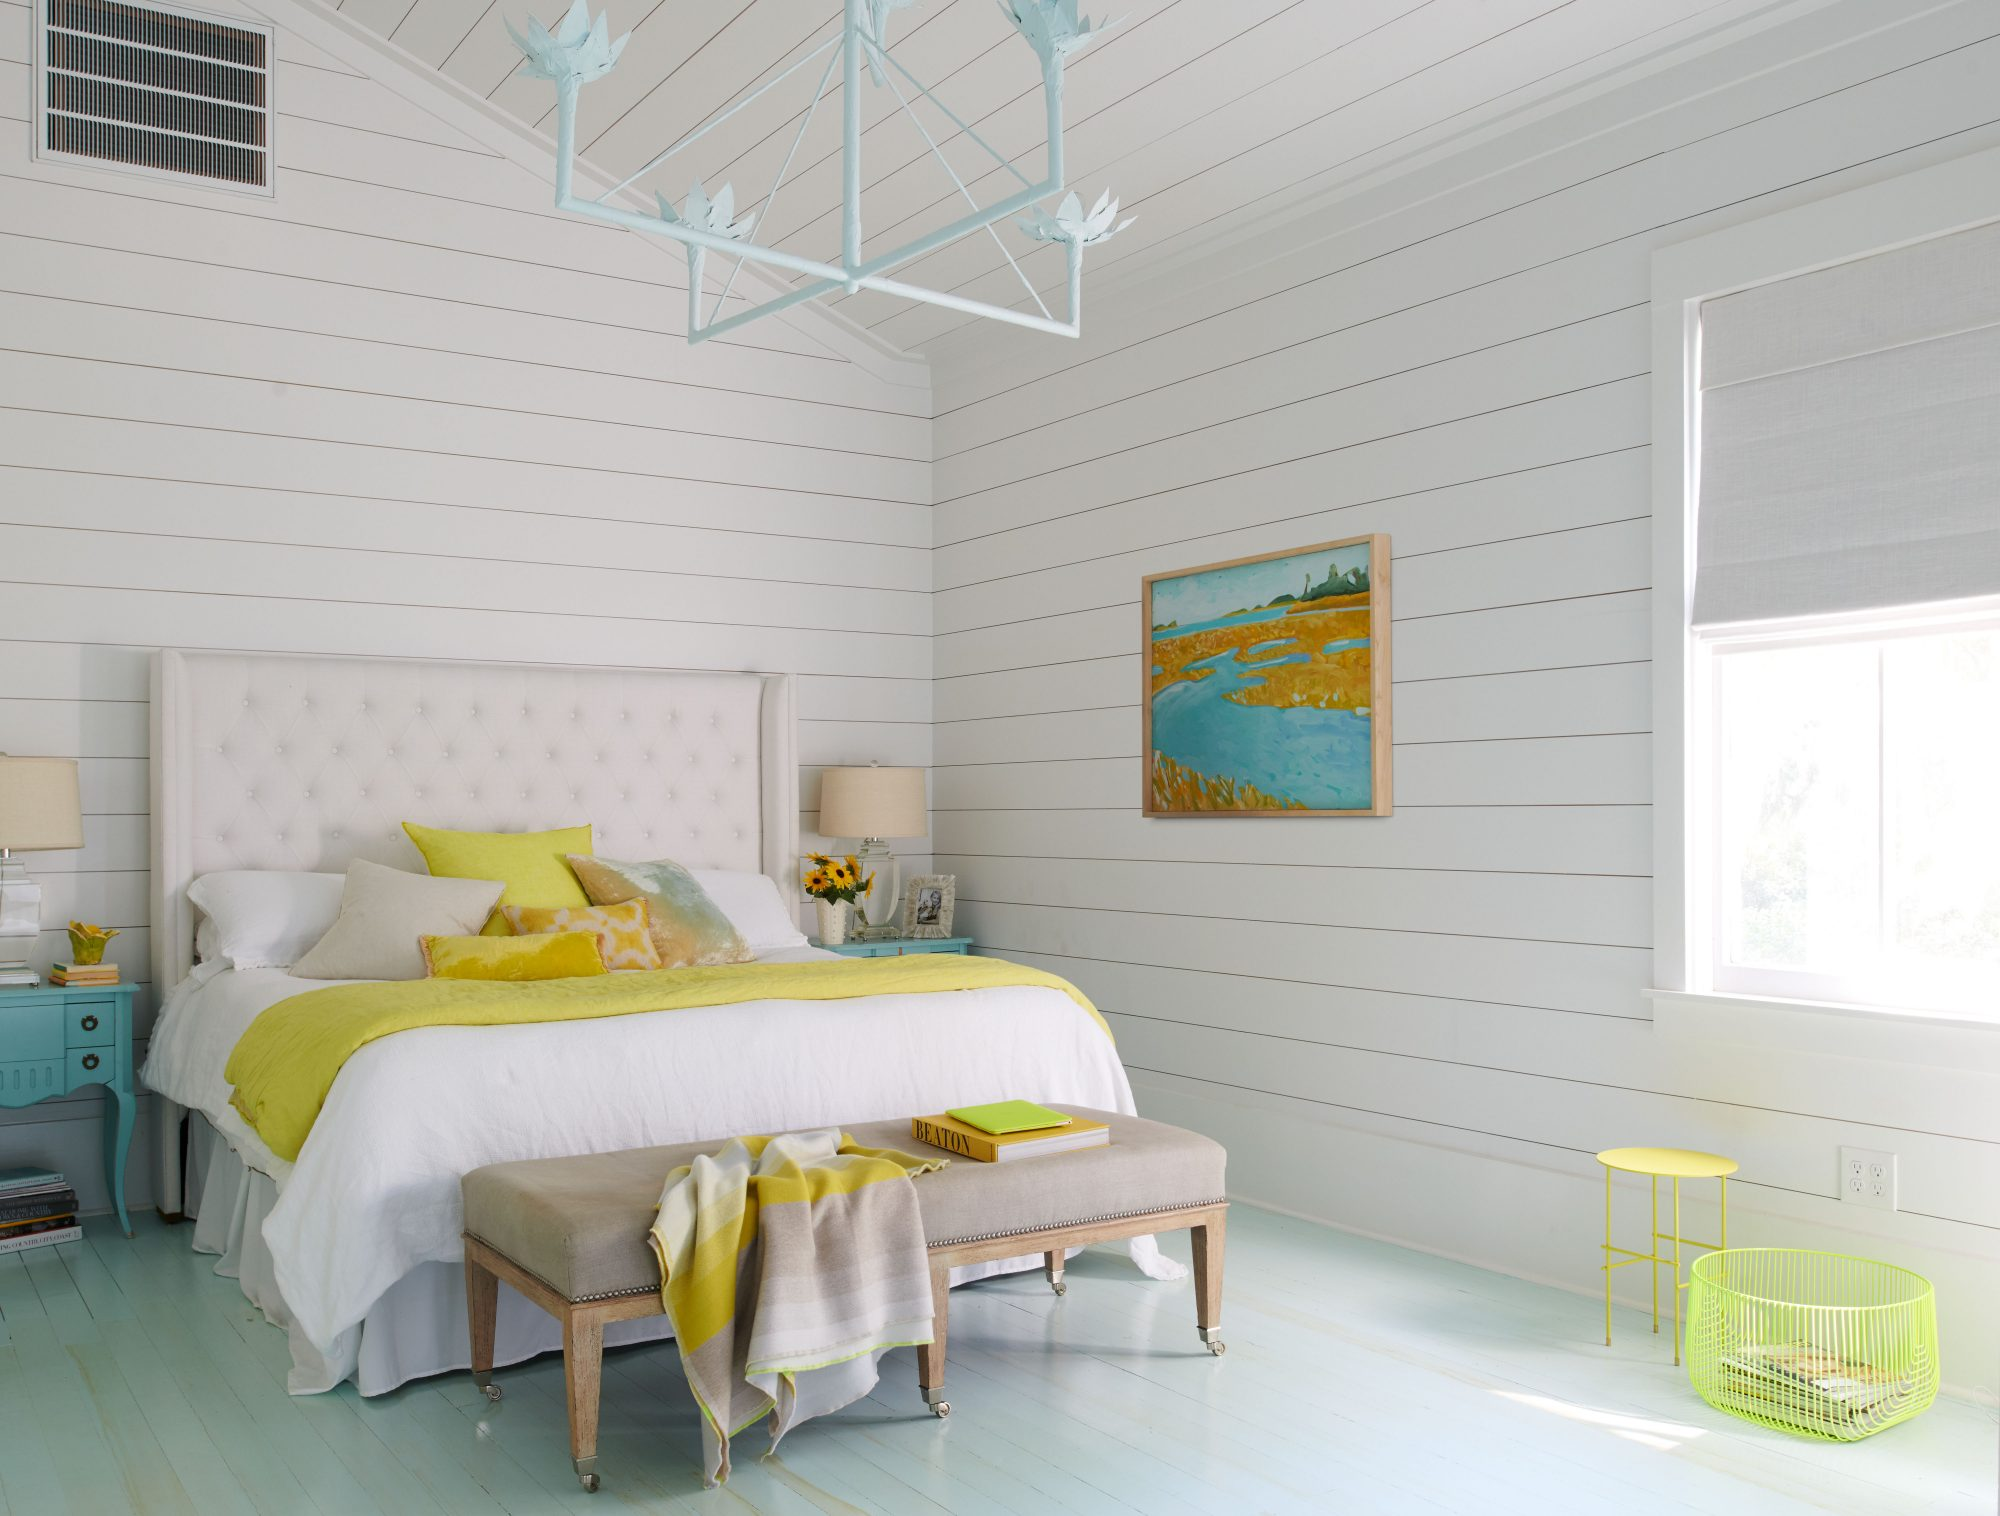 White Bedroom with Neon Pops of Yellow and Teal on Bed